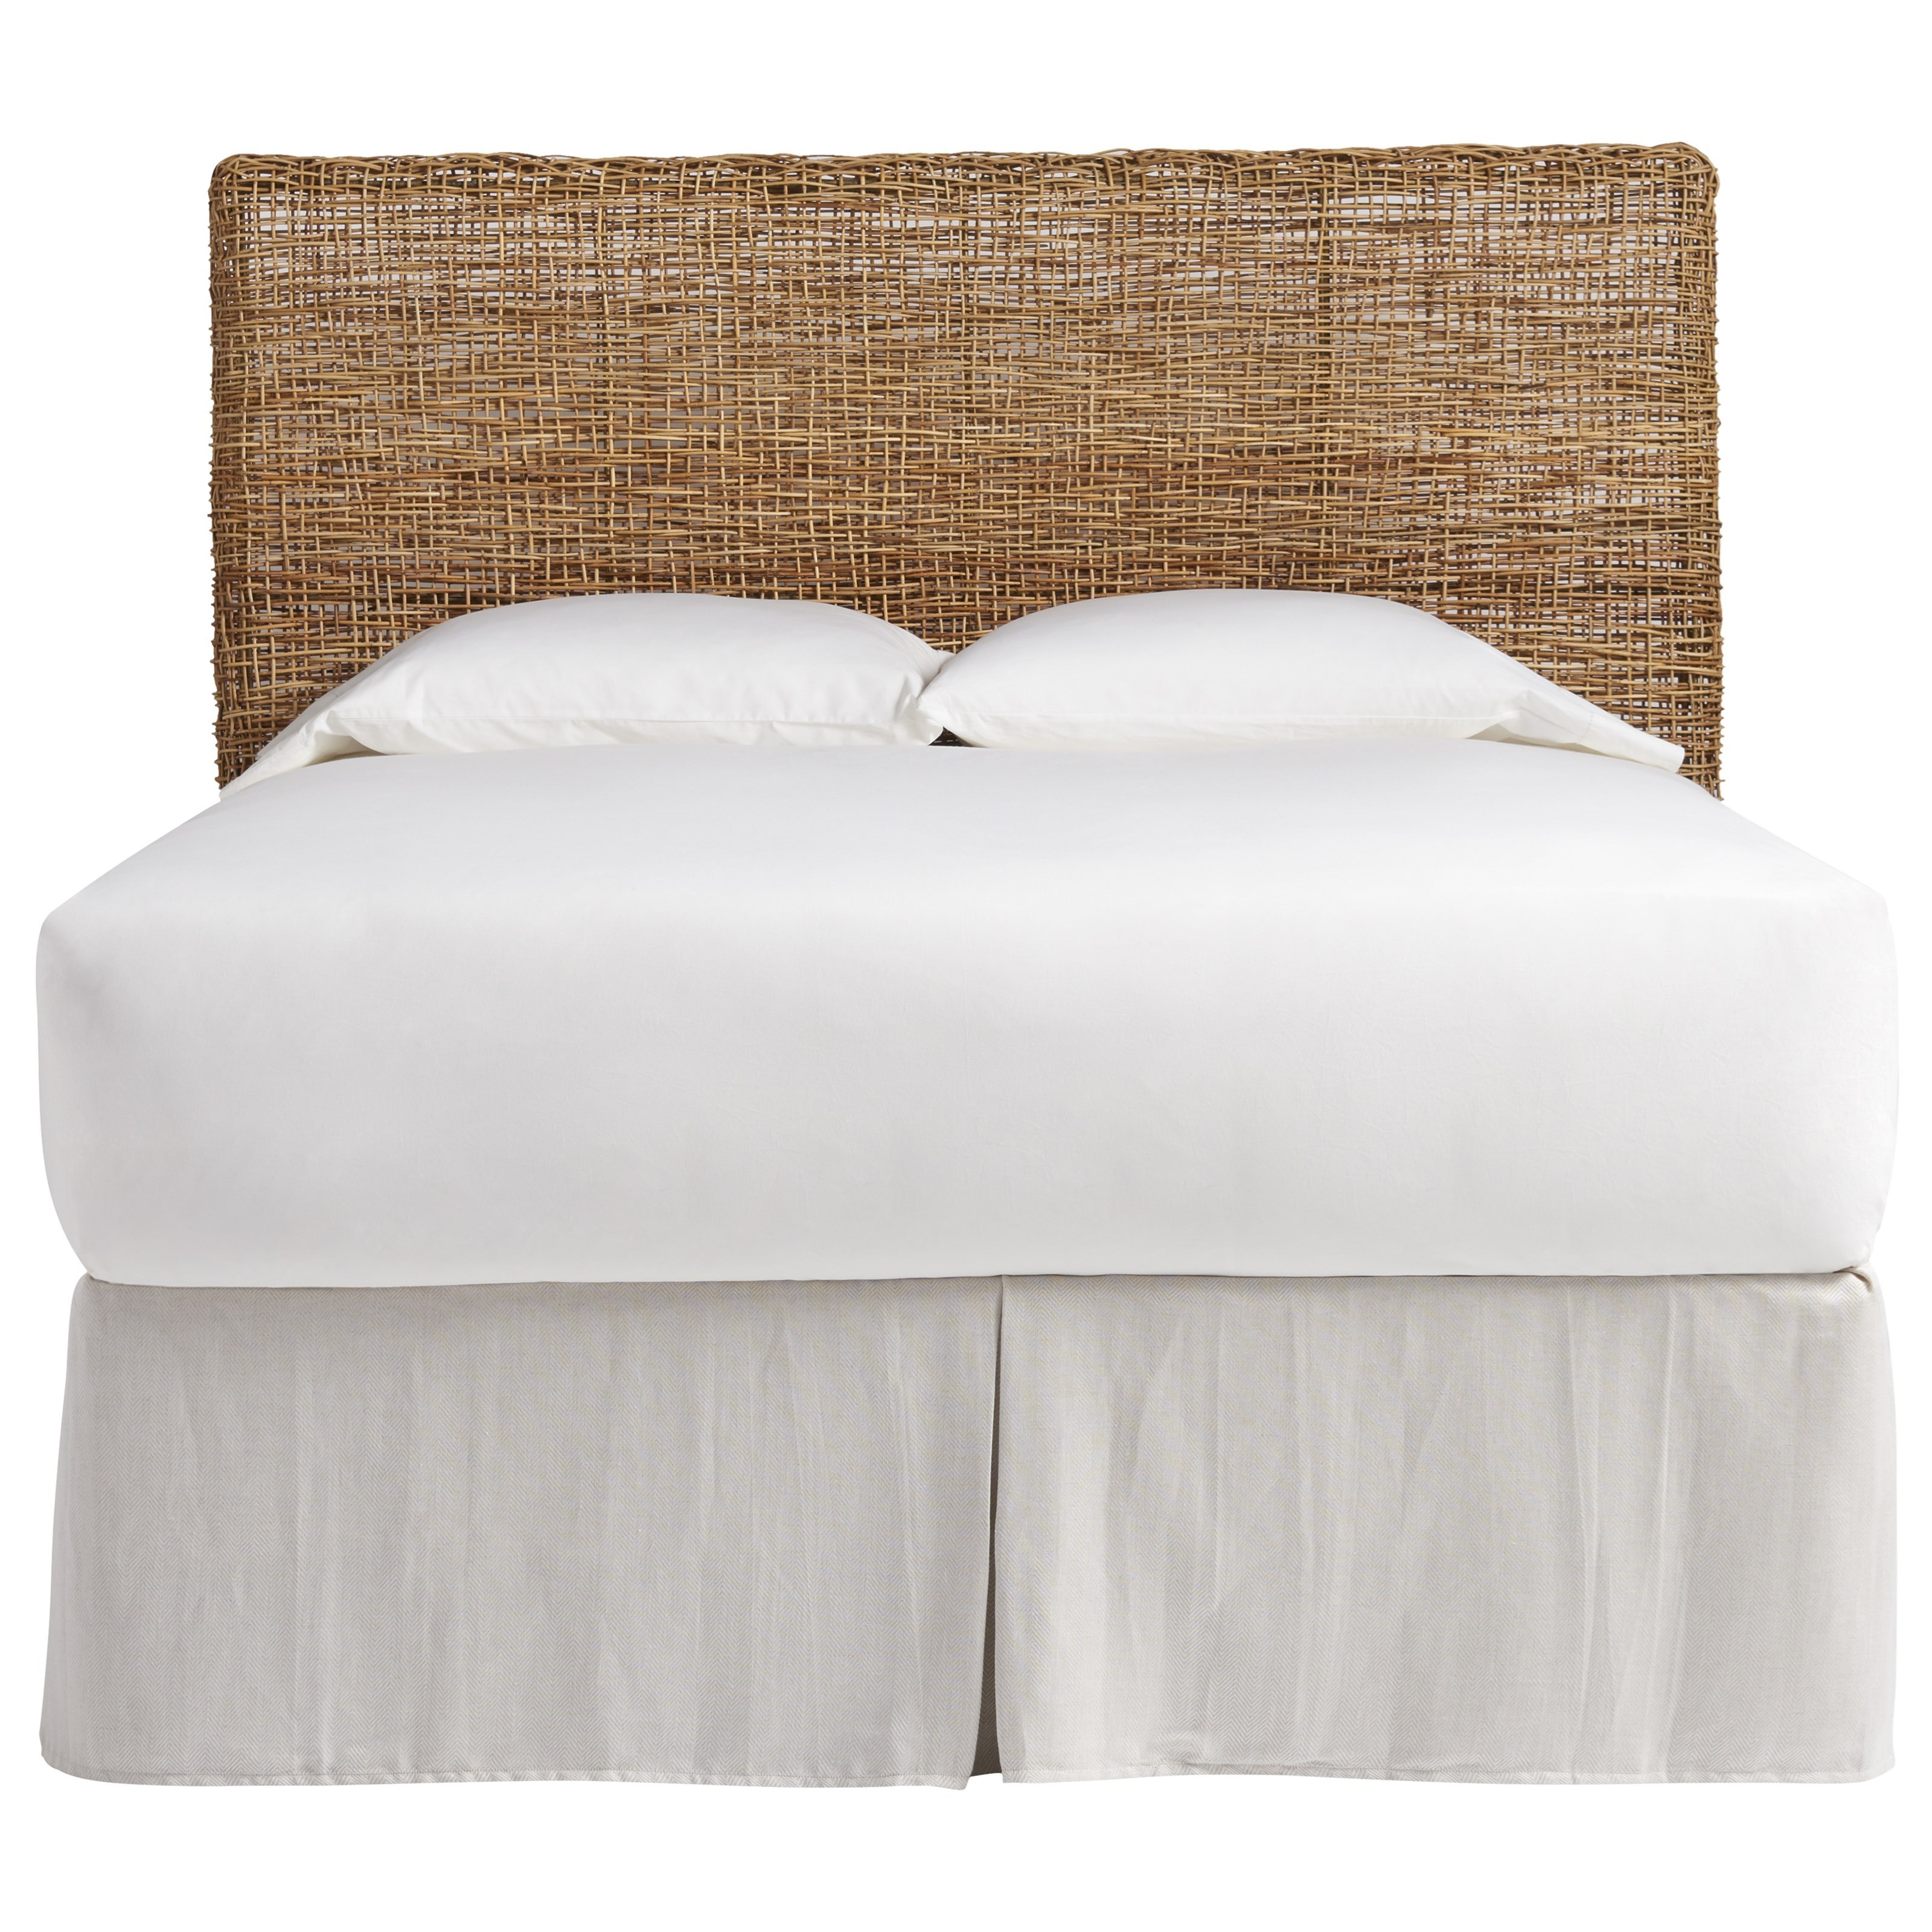 Coastal Living Home - Escape King/California King Headboard by Universal at Baer's Furniture